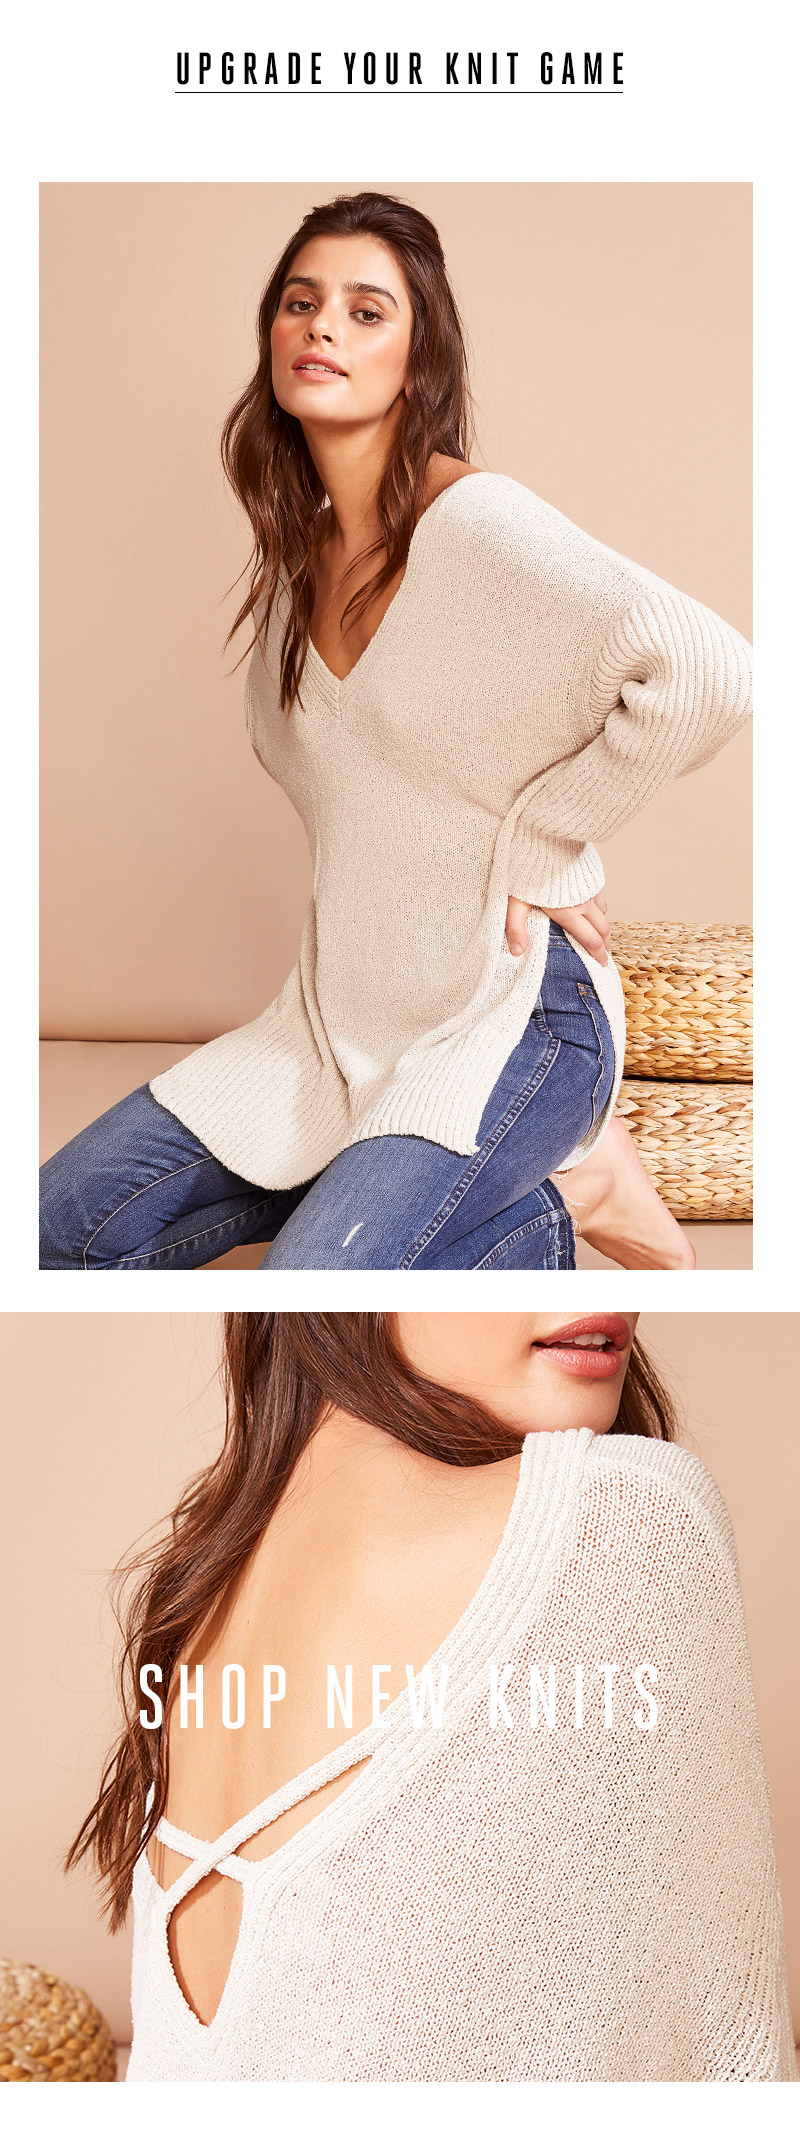 Shop new knits